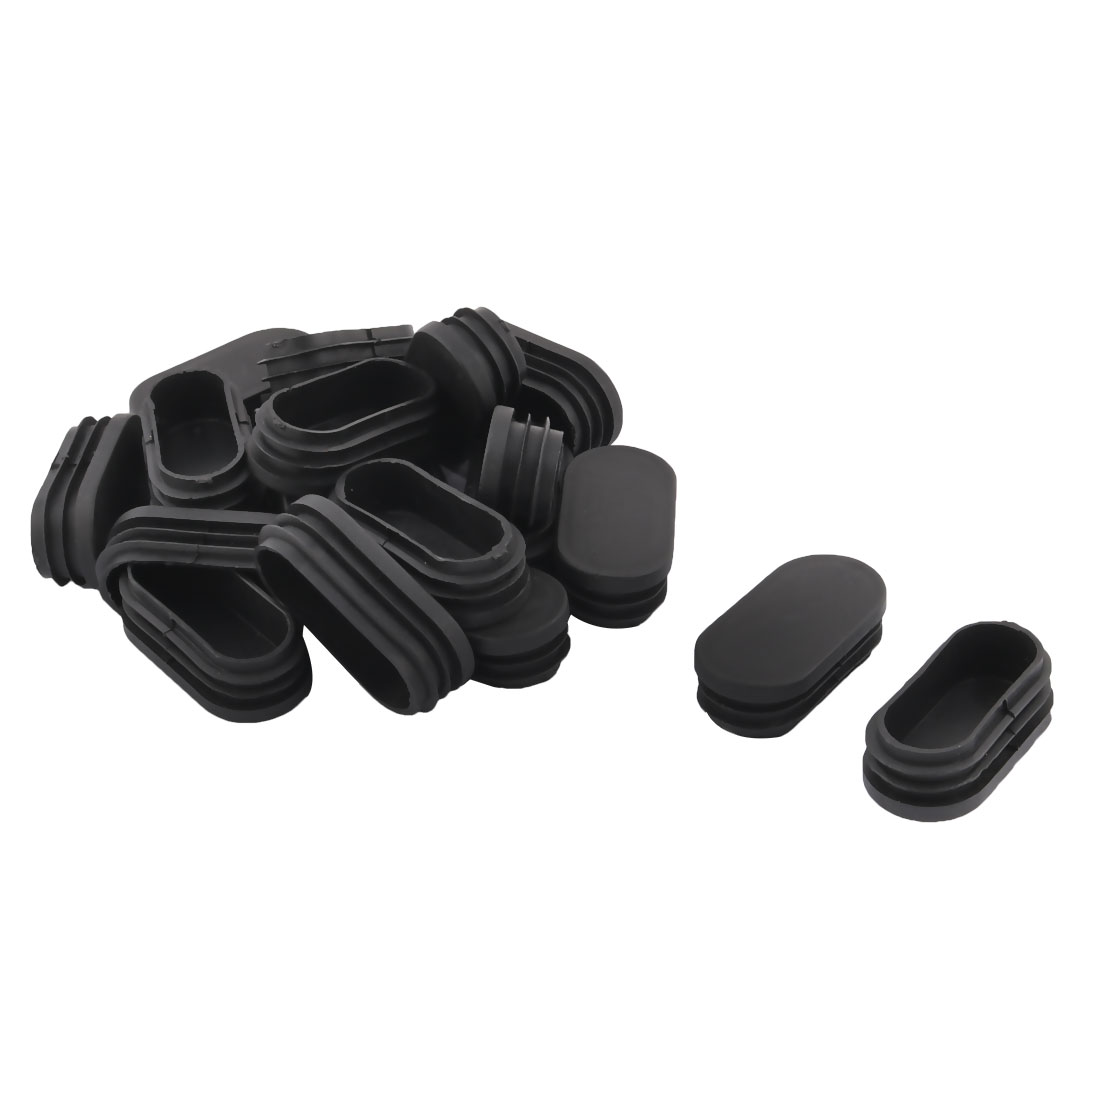 Plastic Oval Design Tube Insert End Blanking Cover Cap Black 60 x 30mm 20pcs